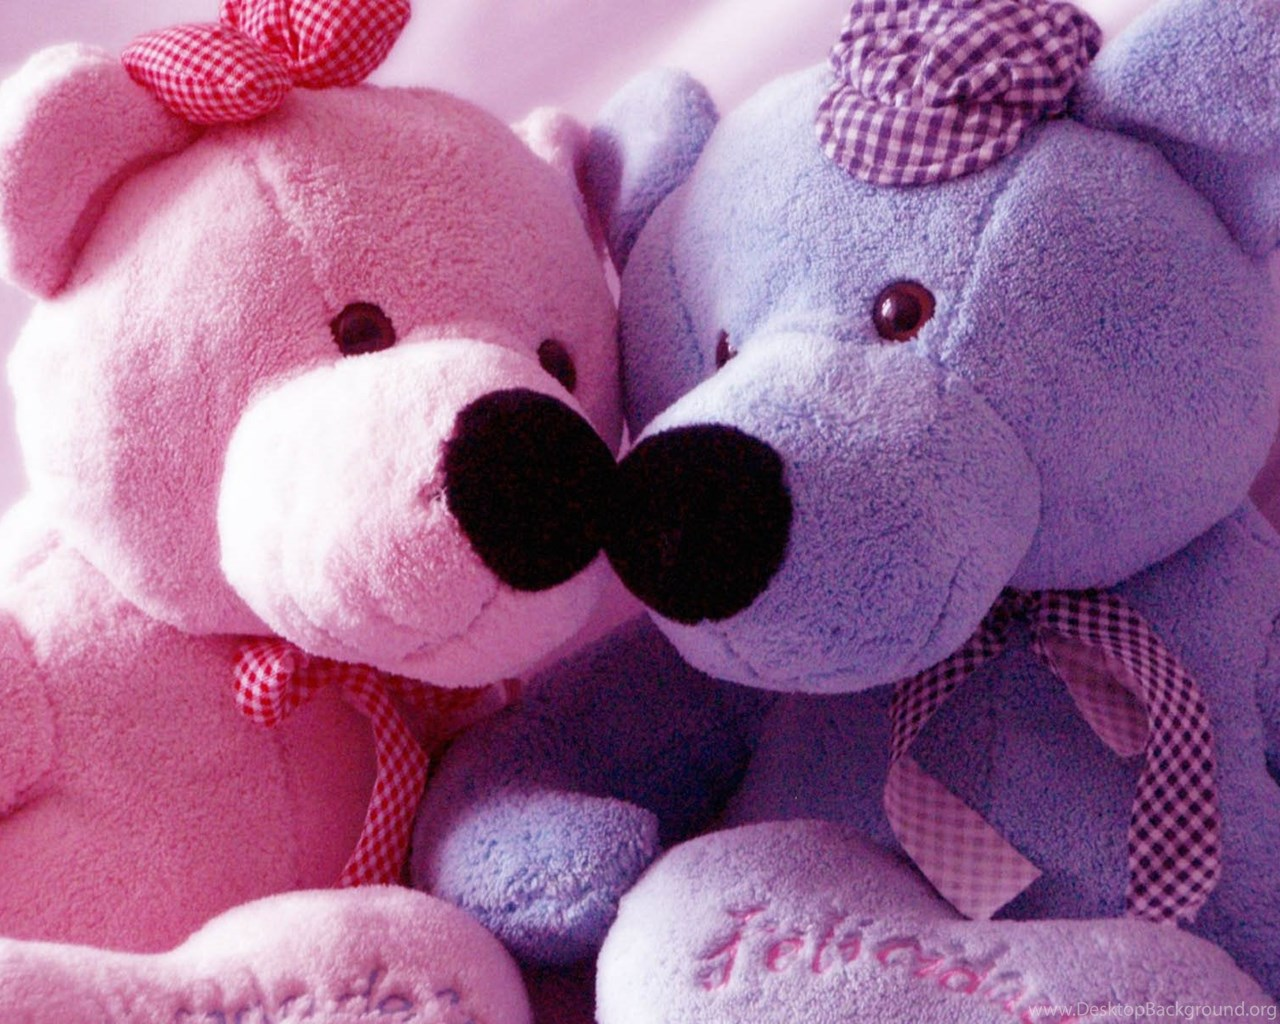 Teddy Bear Cute Love Couple Hd Wallpapers 1080p.jpg